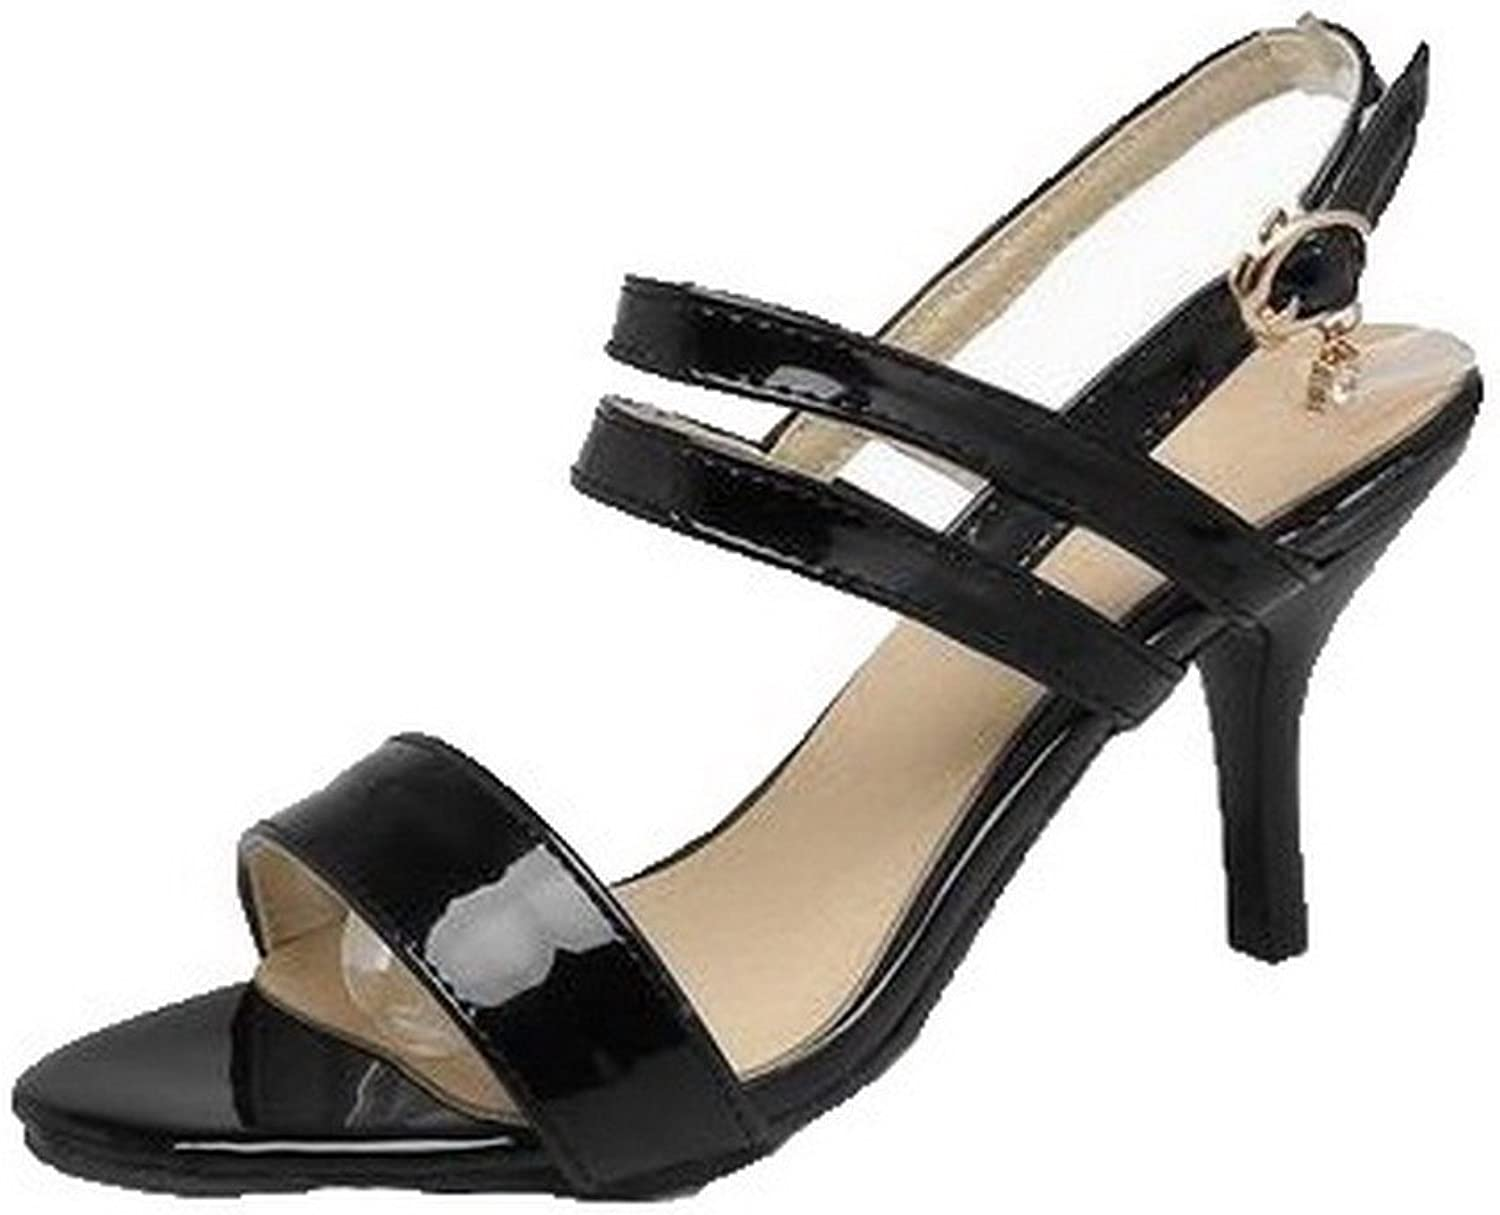 AllhqFashion Women's Patent Leather Open-Toe Solid Buckle Sandals, FBULD014098